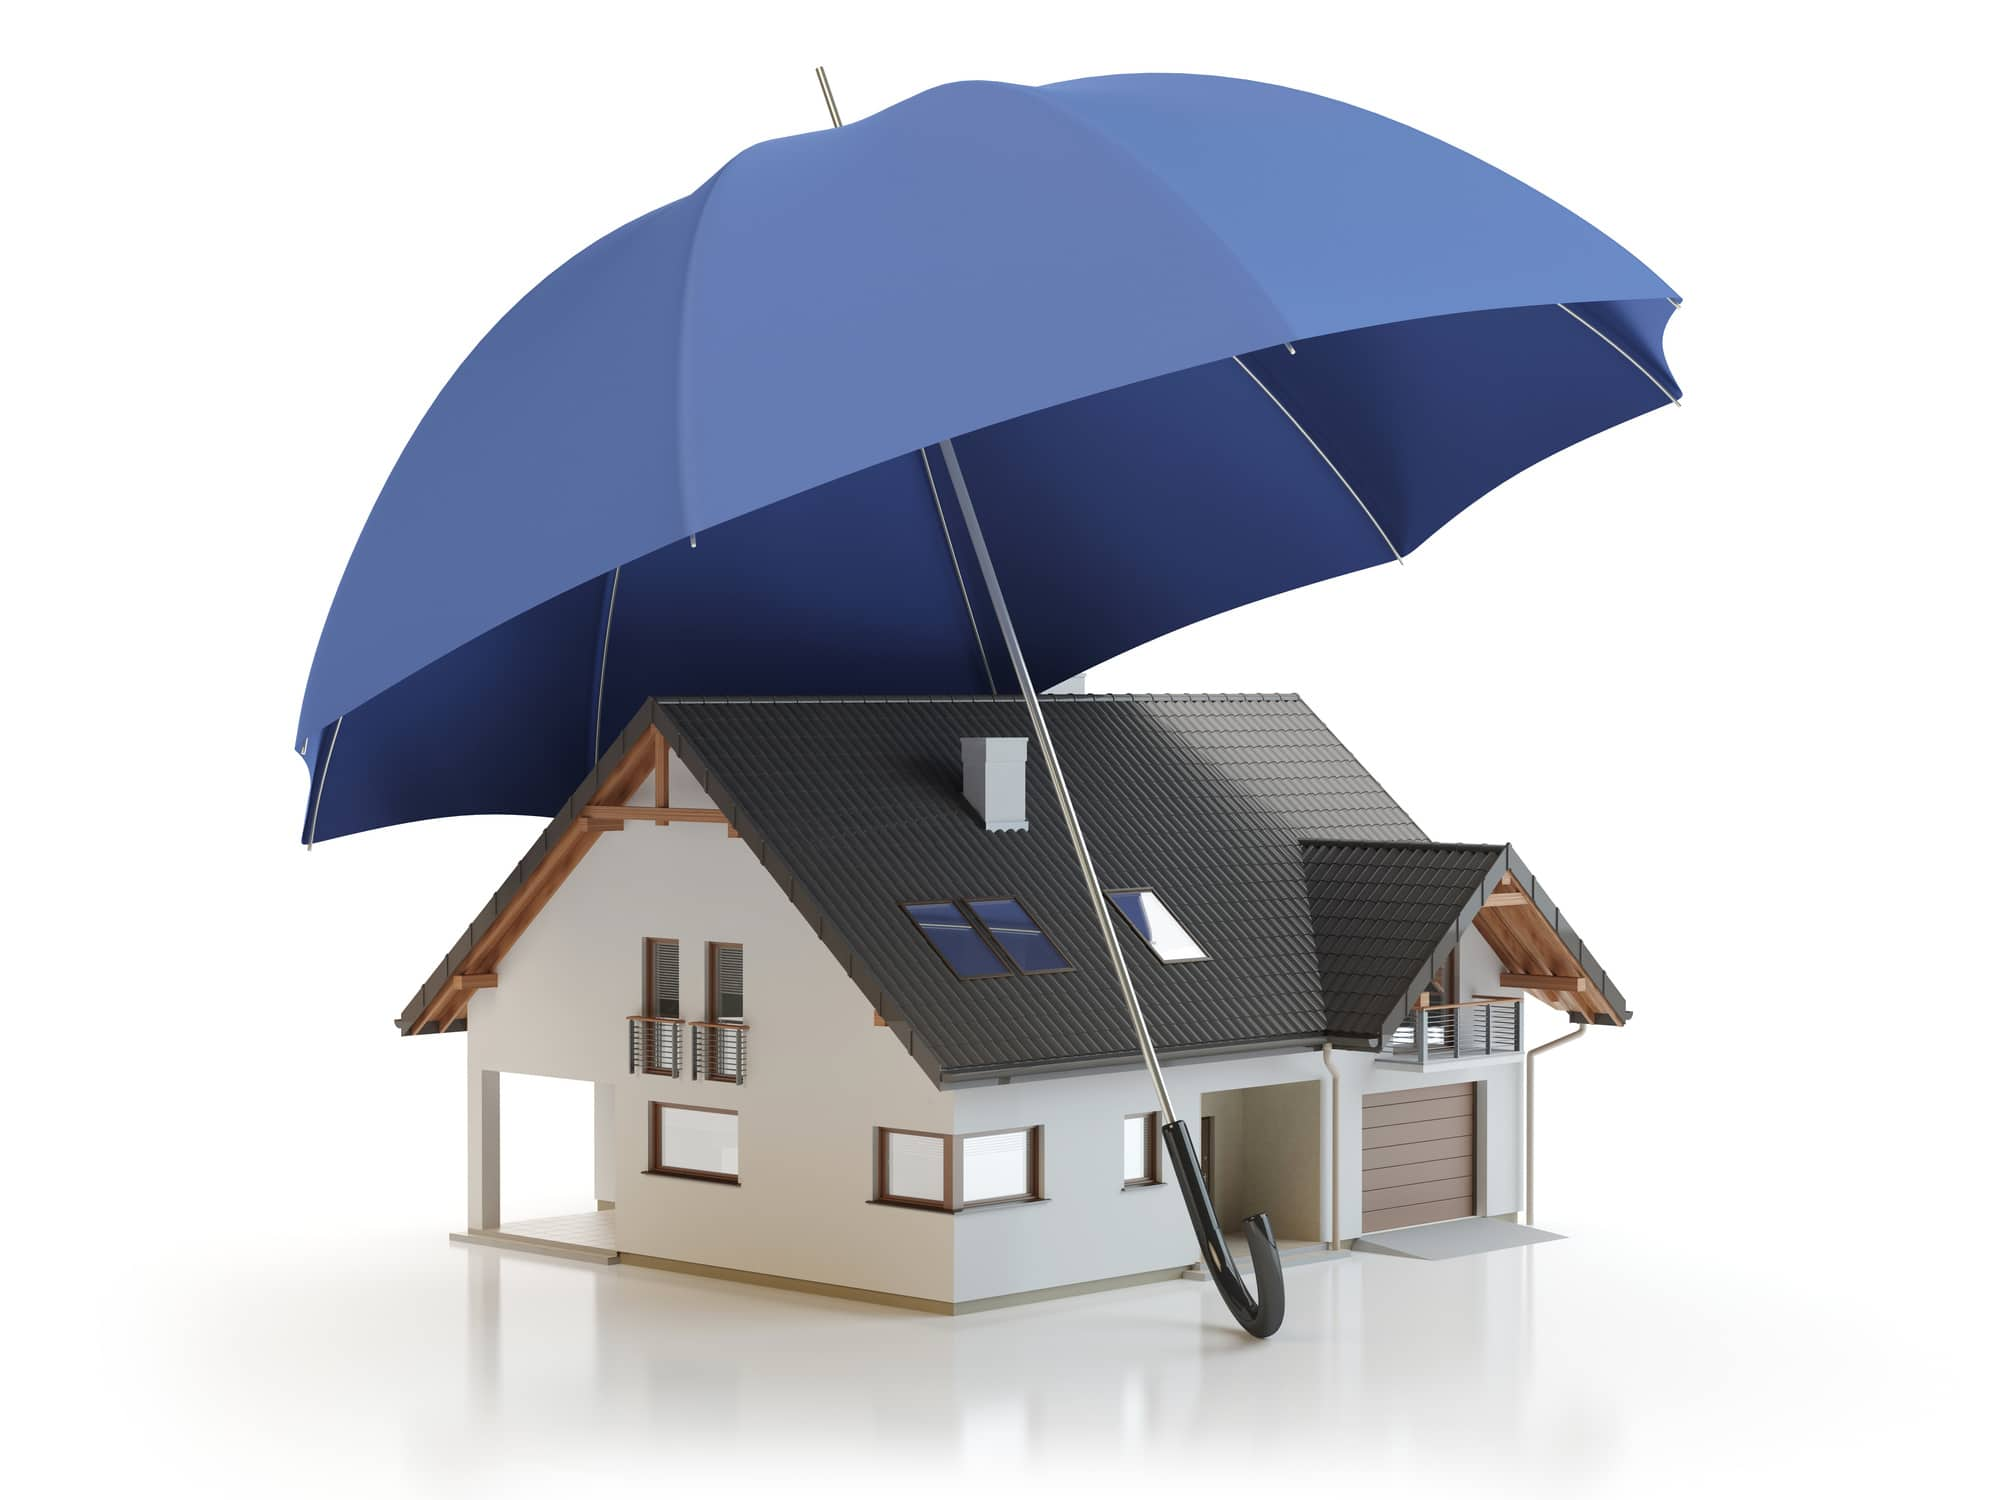 Busted: Common Home Insurance Myths